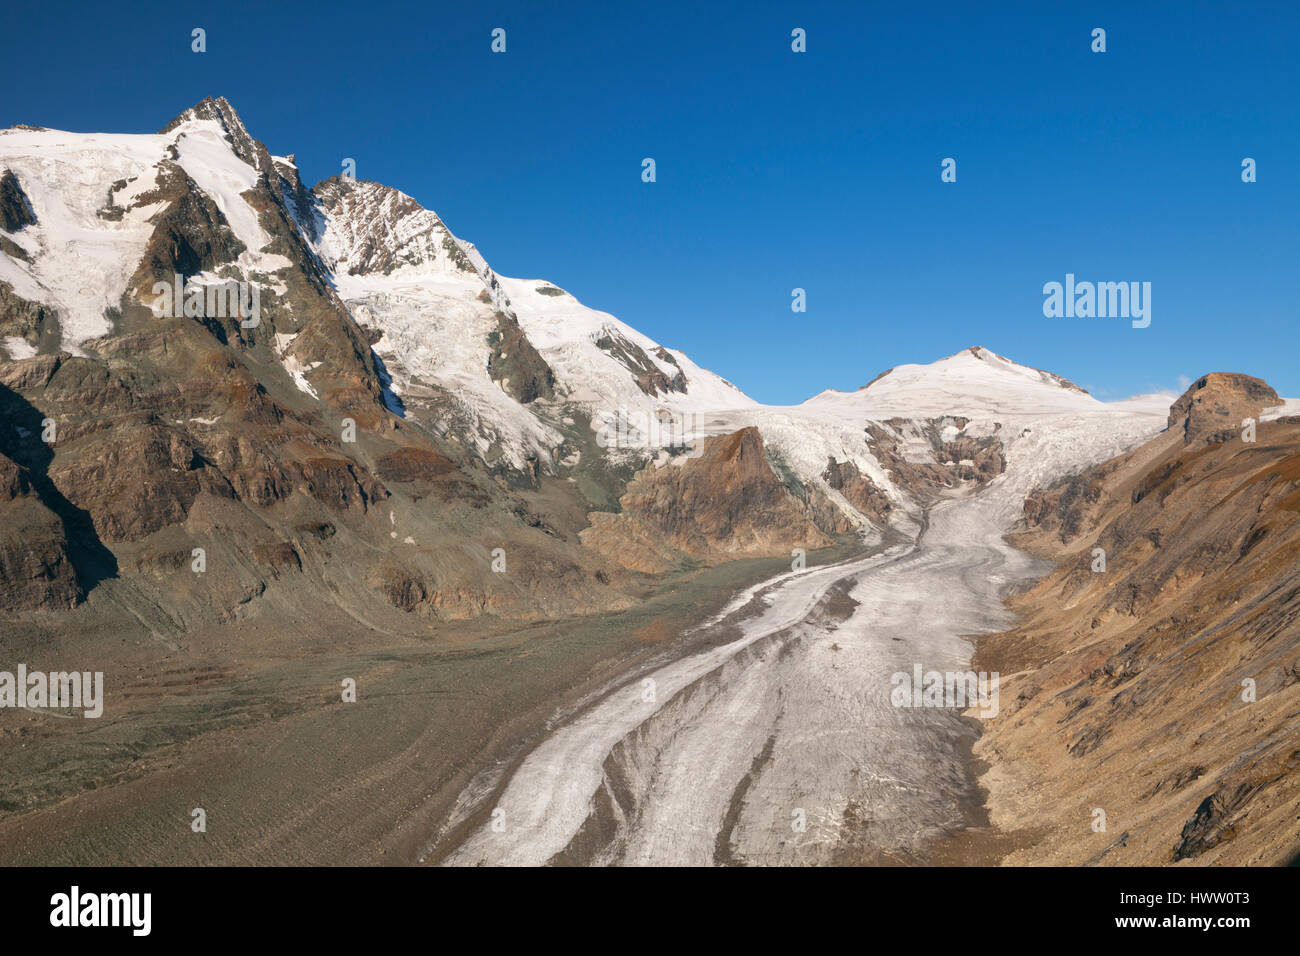 The Großglockner peak and Pasterze Glacier in the Hohe Tauern National Park in Austria on a clear day. Stock Photo